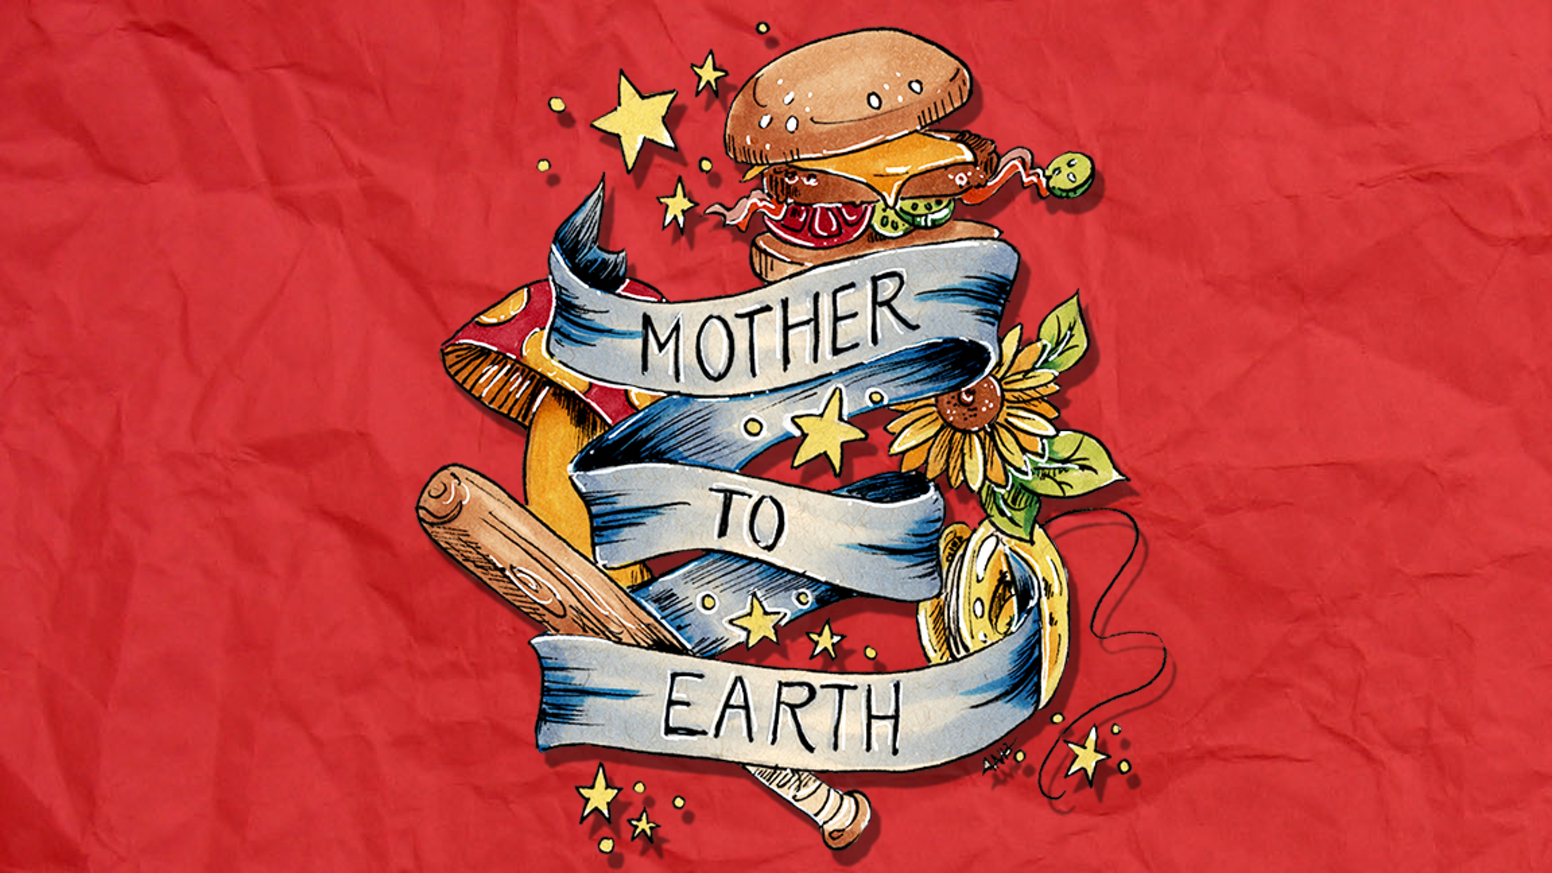 Mother to Earth - A Documentary about Earthbound Beginnings